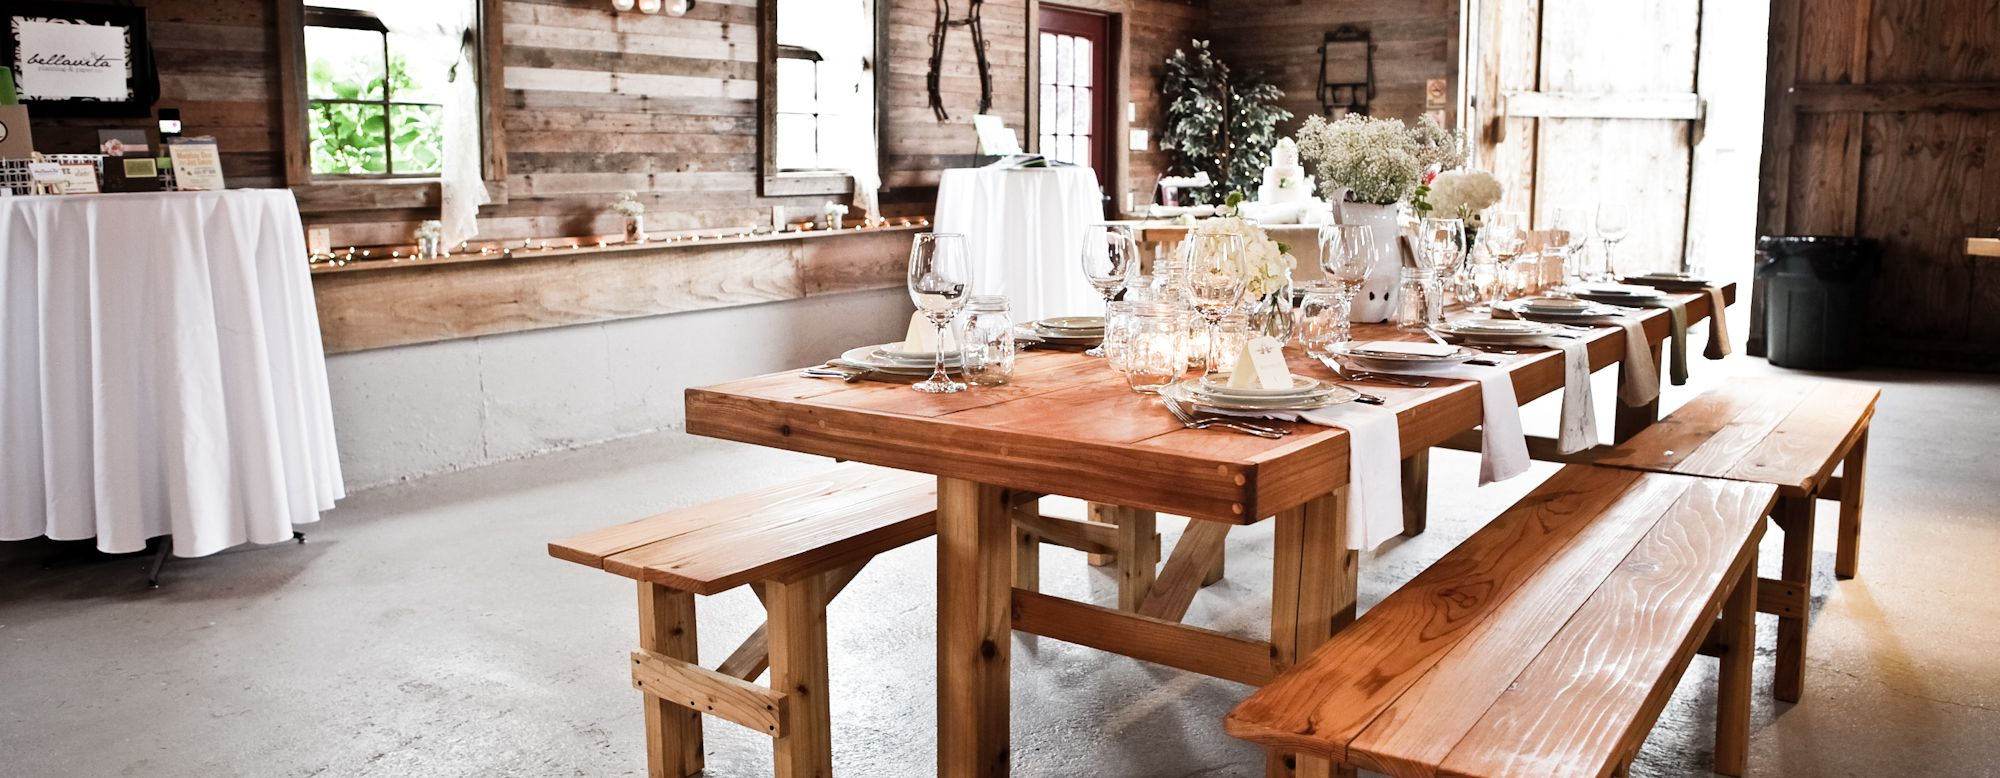 seattle farm tables wood table rentals seattle area farm tables mismatched dish rentals - Farmhouse Table For Sale